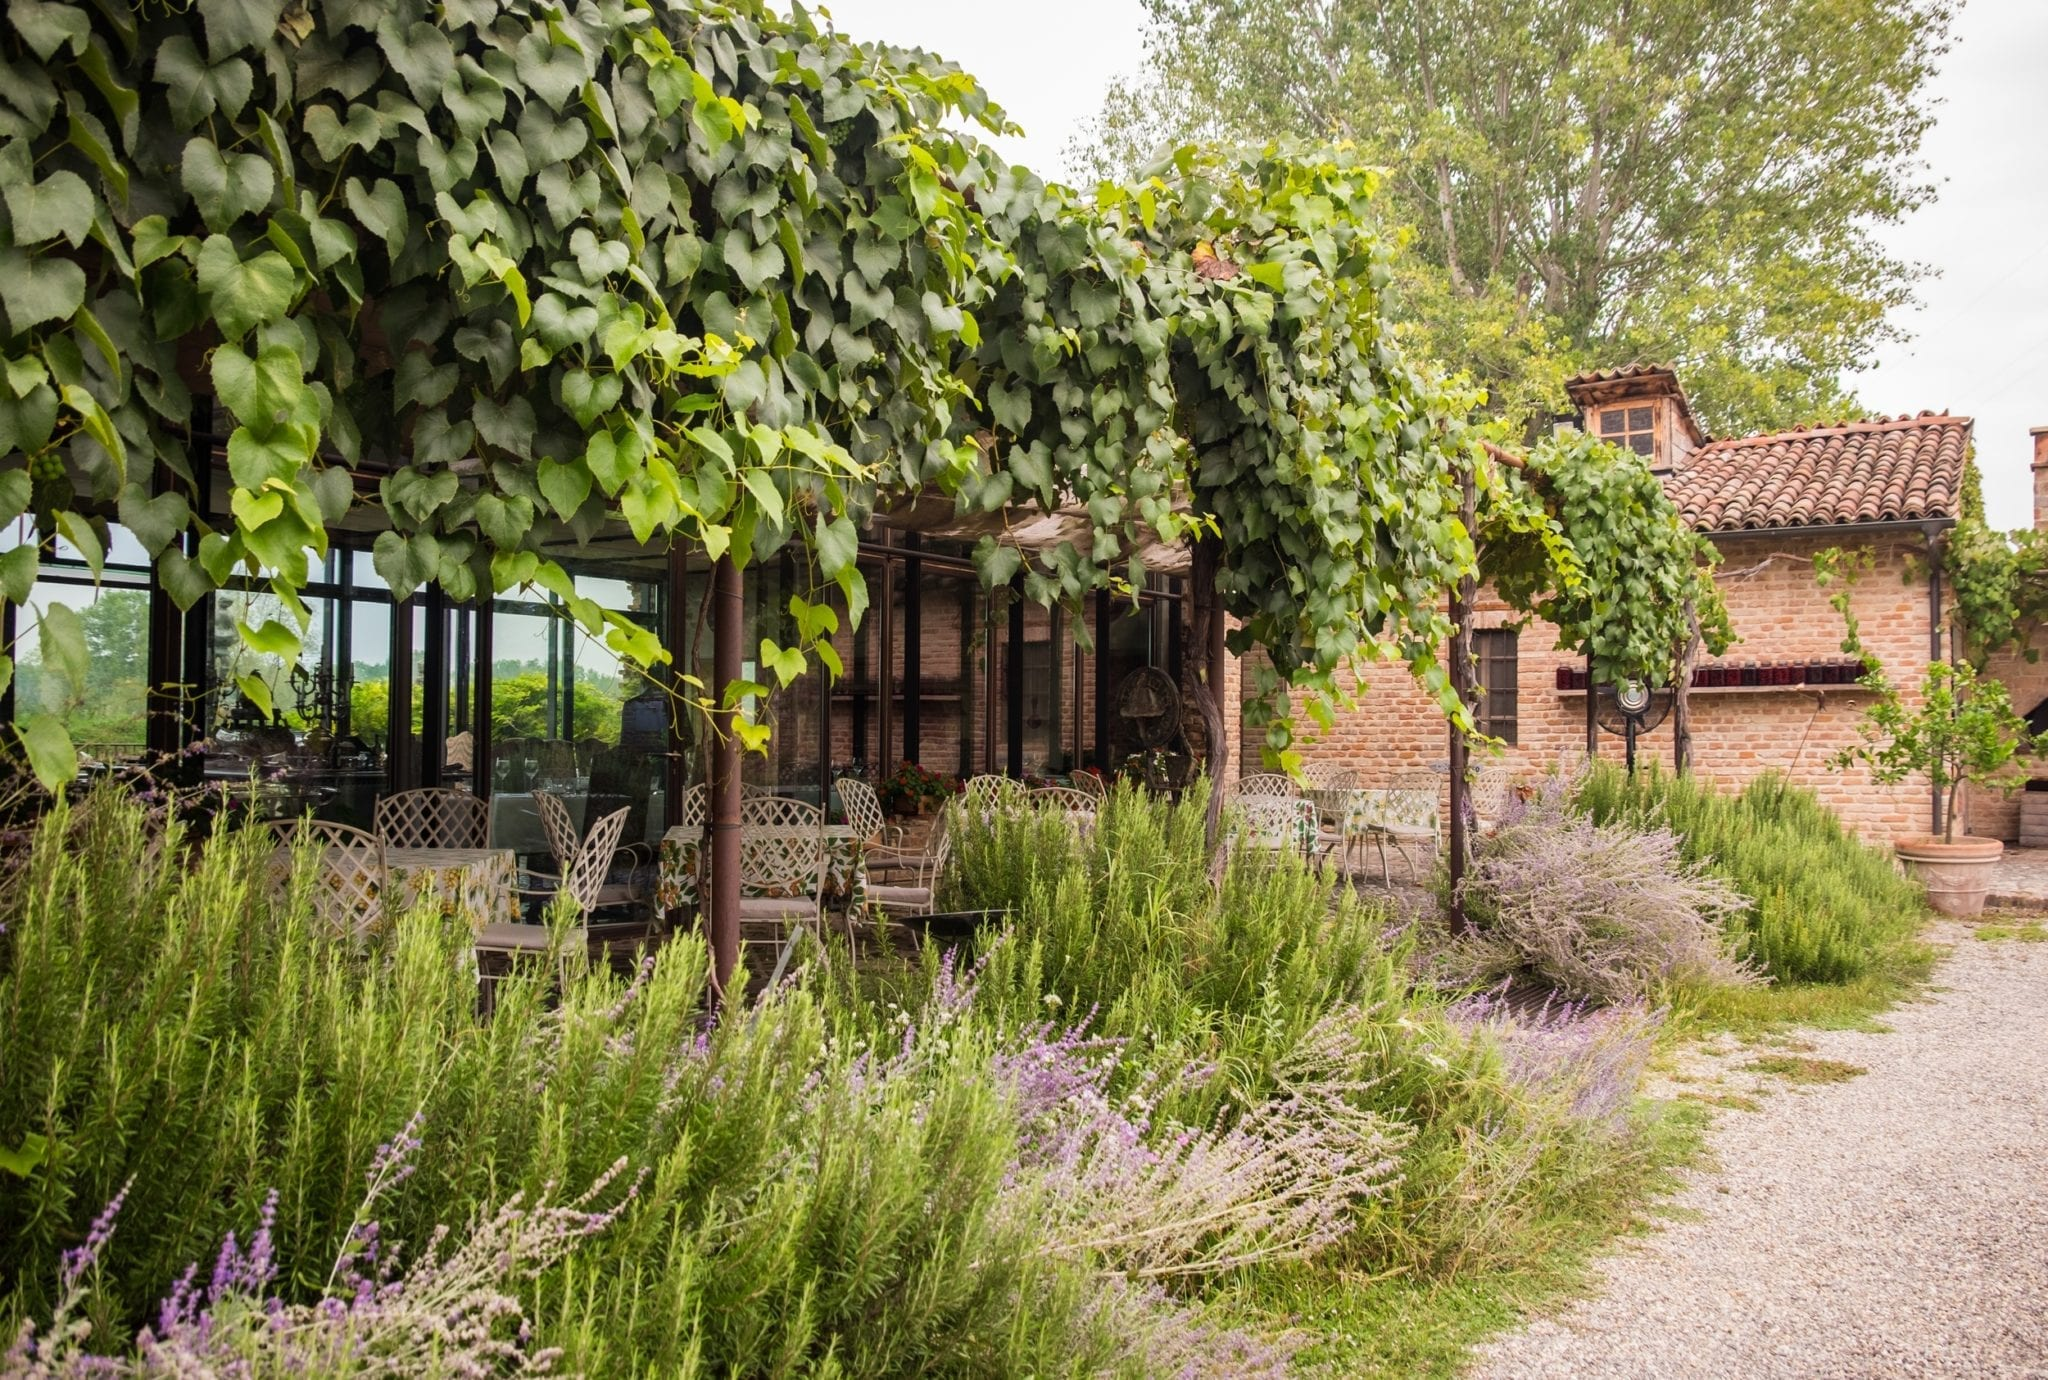 The outdoor dining area -- chairs underneath an ivy-covered trellis, surrounded by lavender bushes, red brick buildings in the background.